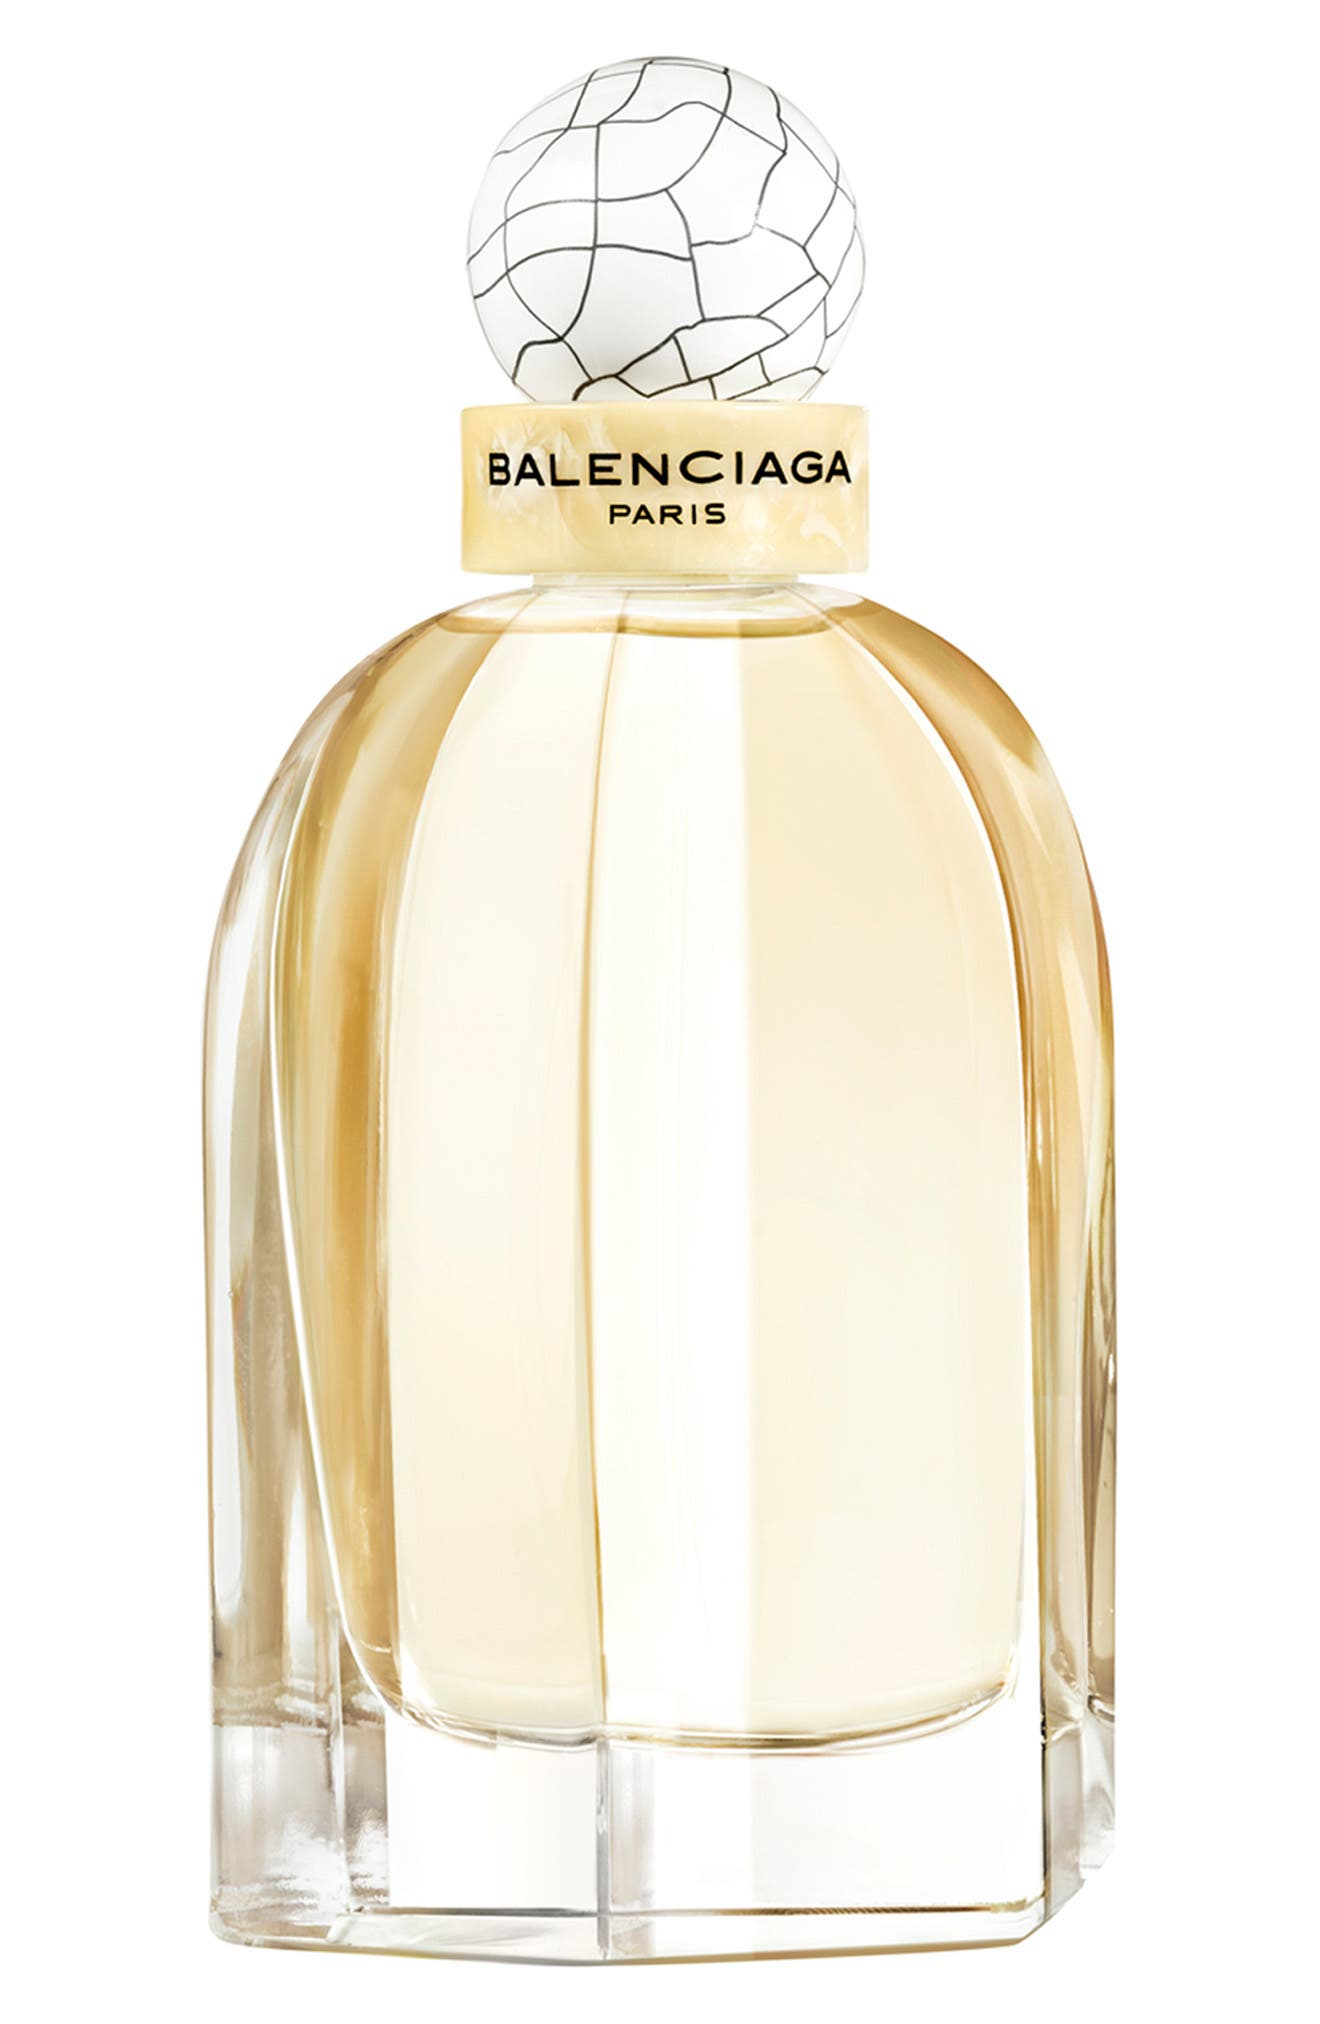 BALENCIAGA, Paris Eau de Parfum, Alternate thumbnail 3, color, NO COLOR